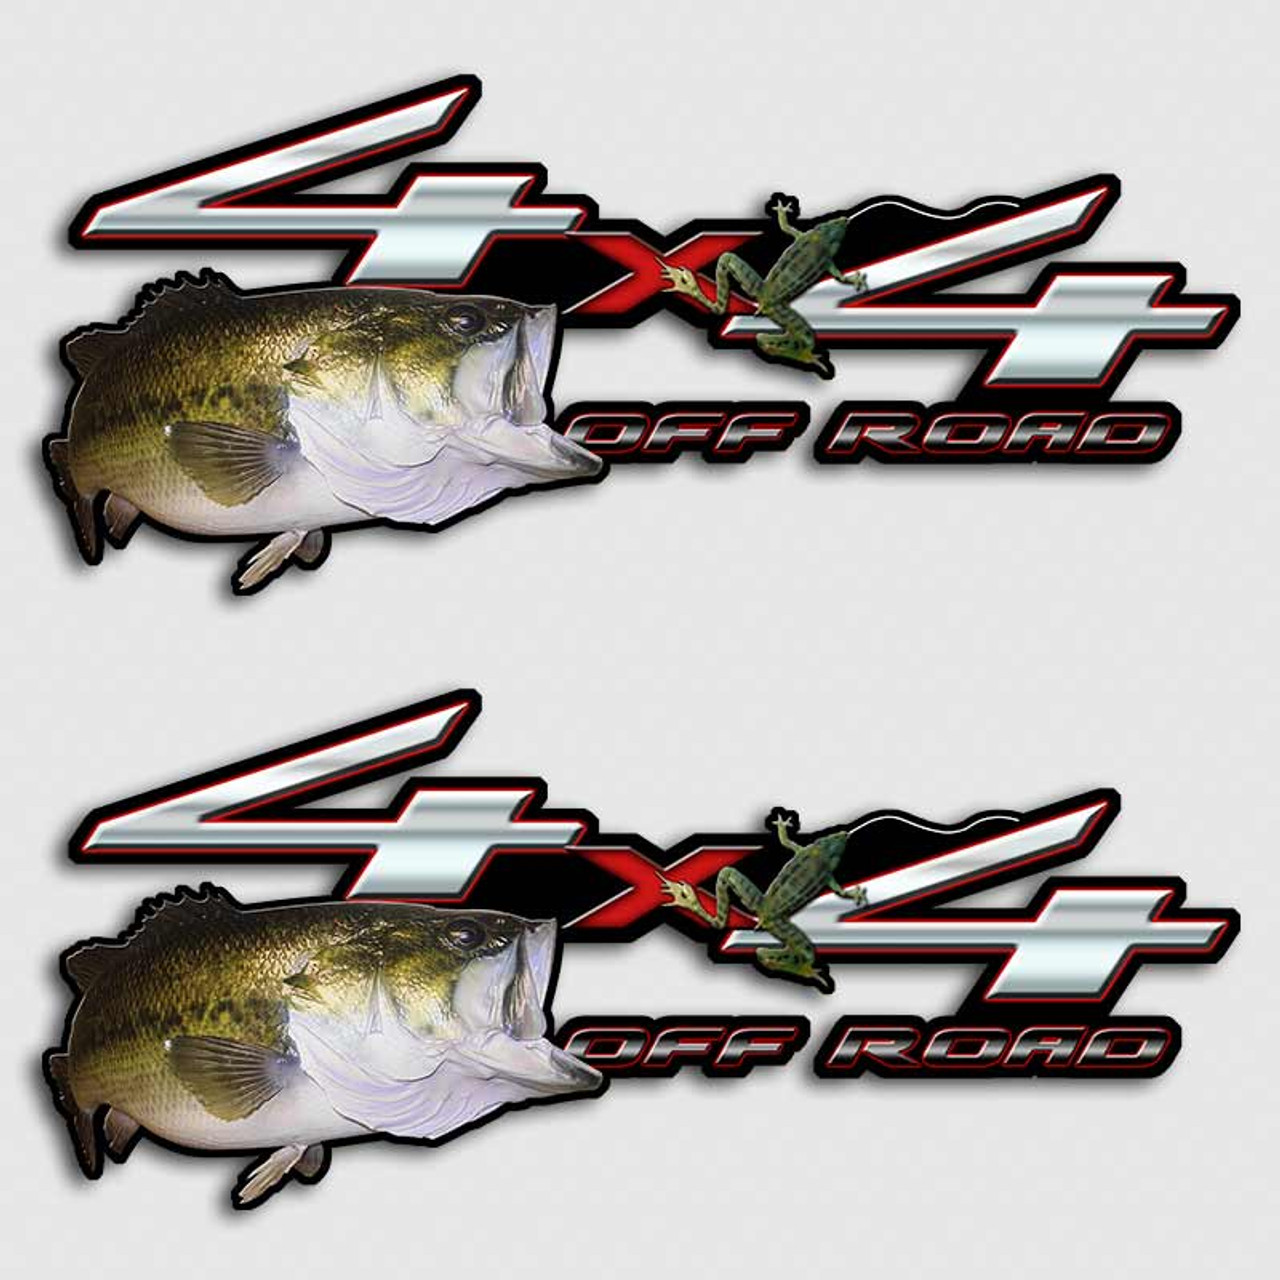 FX Bass Fishing Ford Truck Decals - Fishing decals for trucks